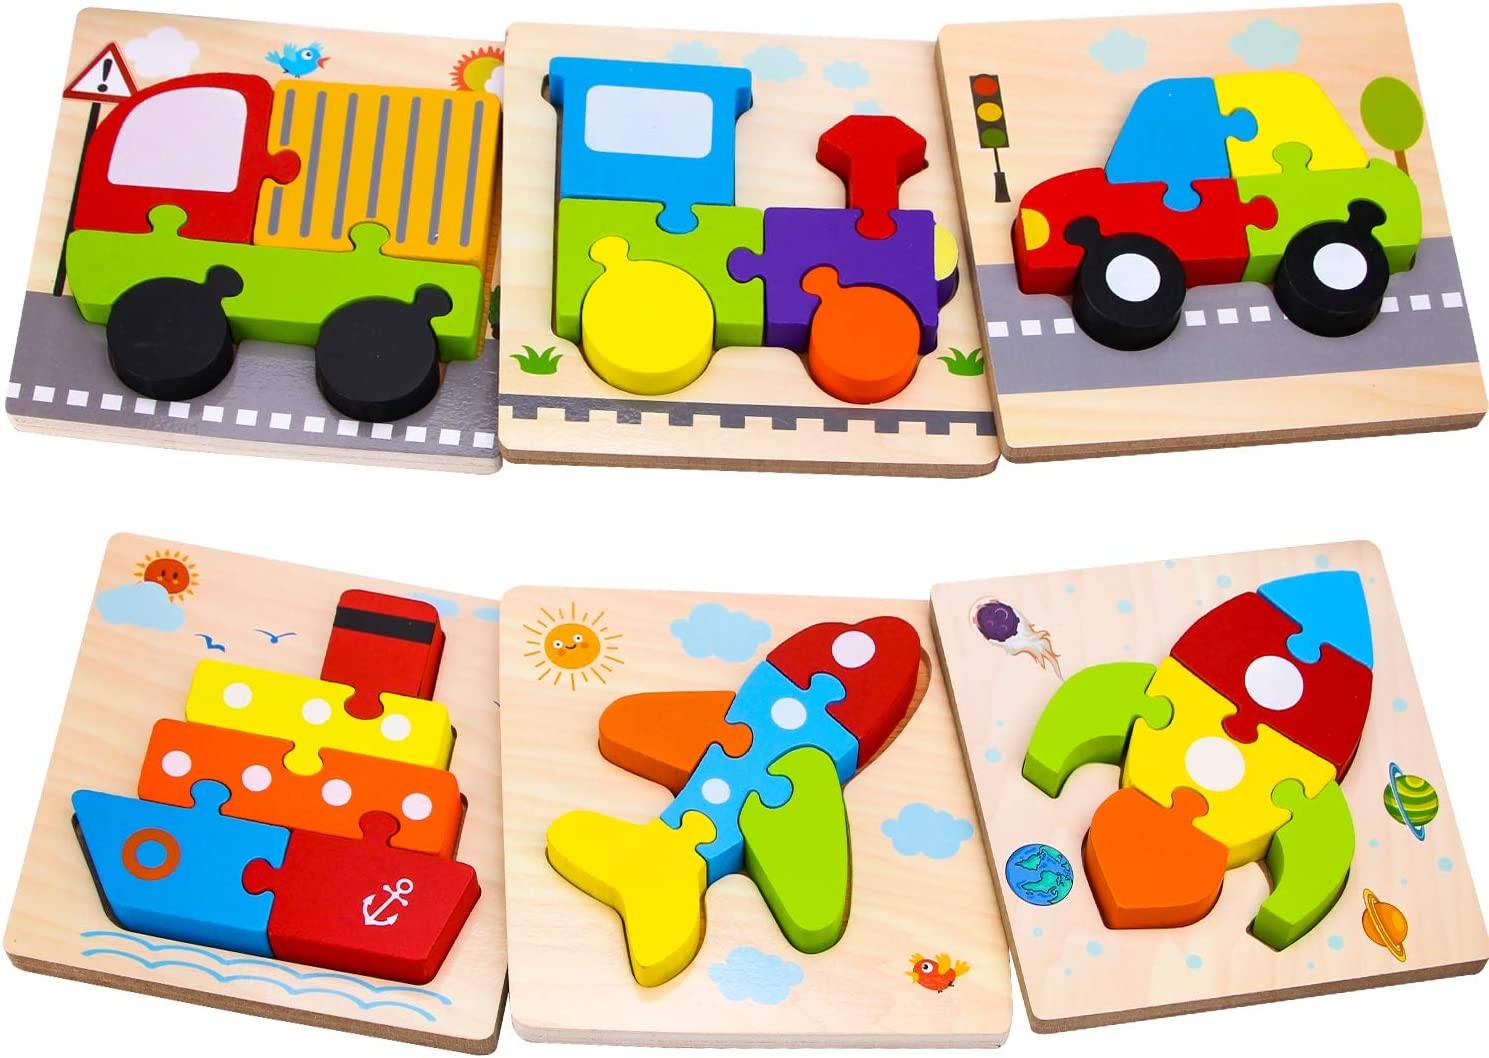 SKYFIELD Wooden Gift Toys for 1 2 3 Years Old Boys Girls. Toddler Car Truck Train Puzzle Learning Educational Toys, Stem Montessori Toy for Baby 12 Month and Up. 6 Puzzle Sets (Vehicle Puzzles)